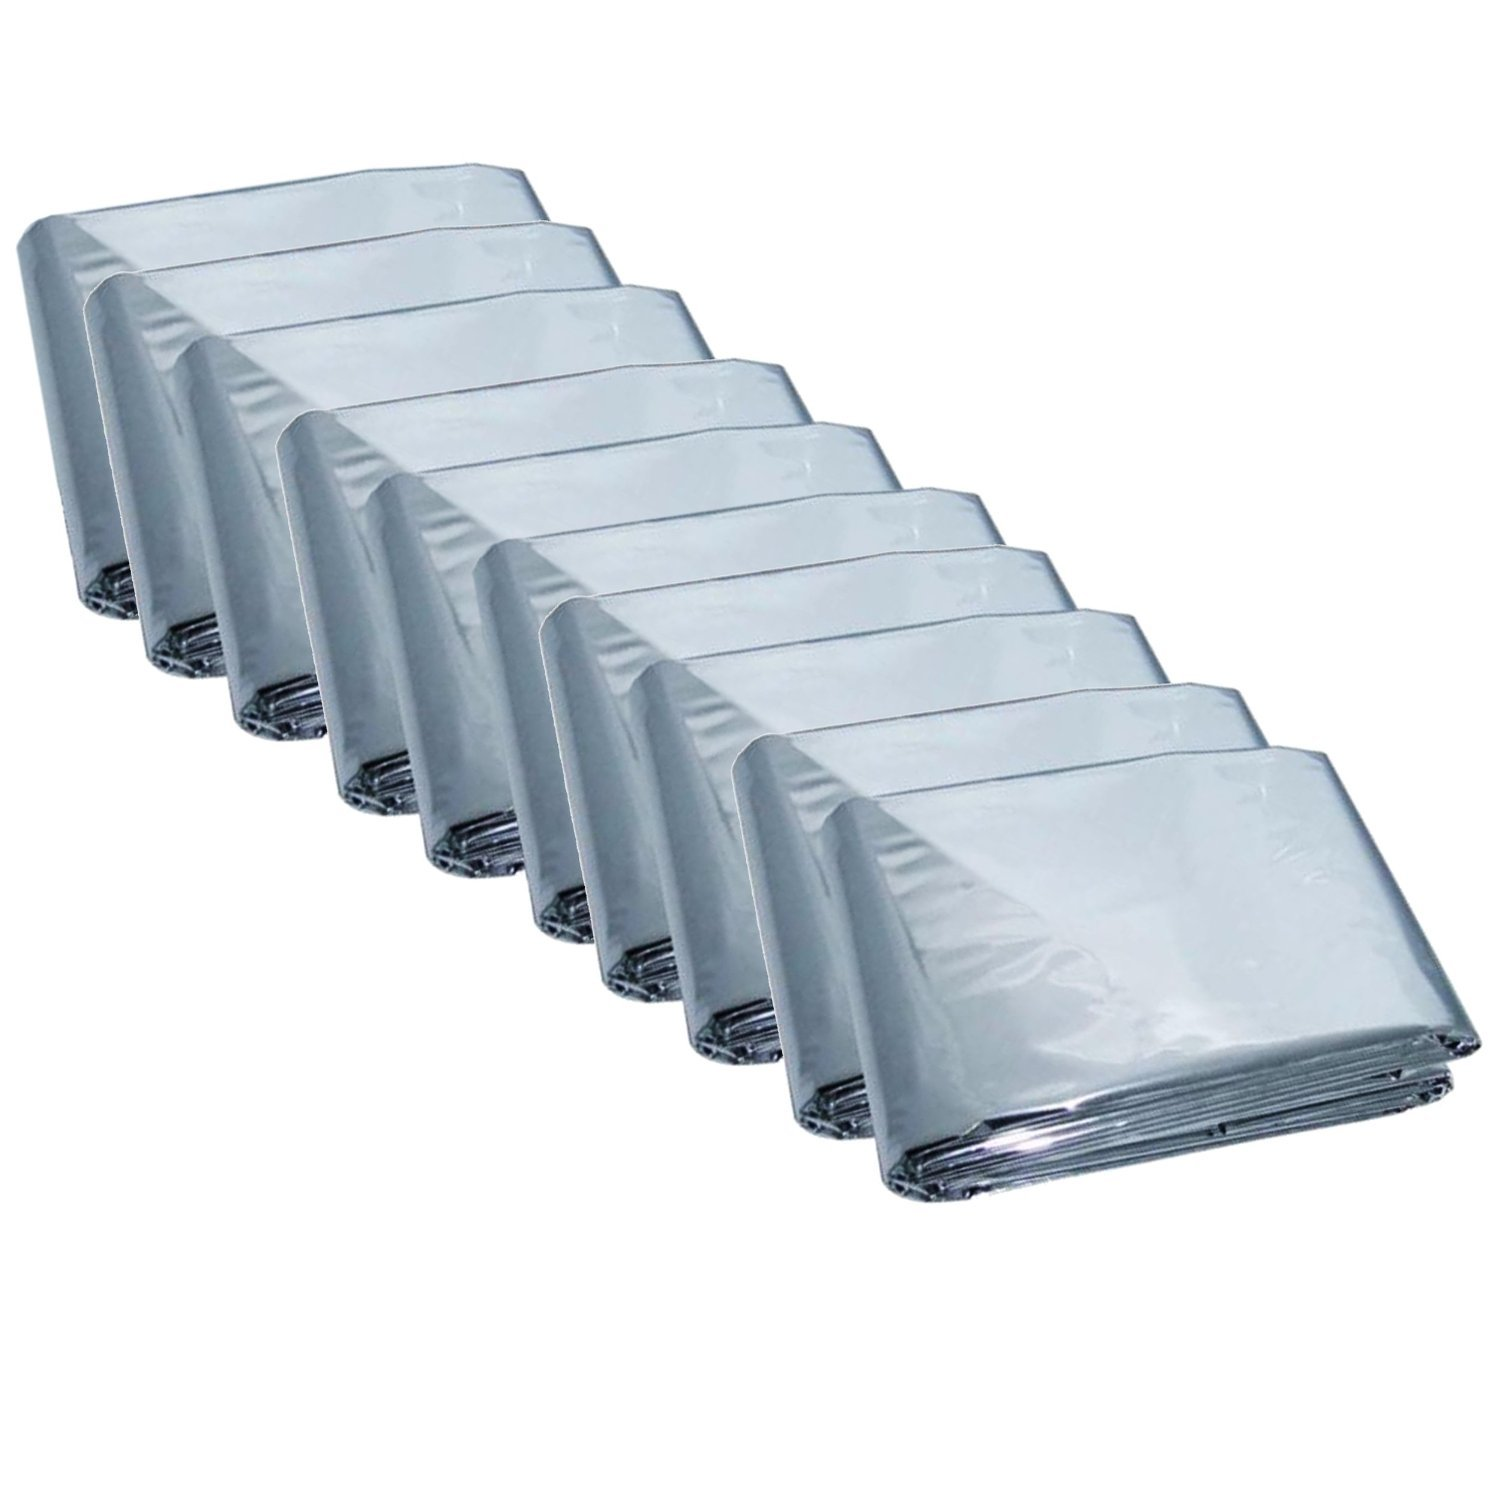 Pack of 20 Emergency Mylar Thermal Blankets Medique B01DZ4PGCE